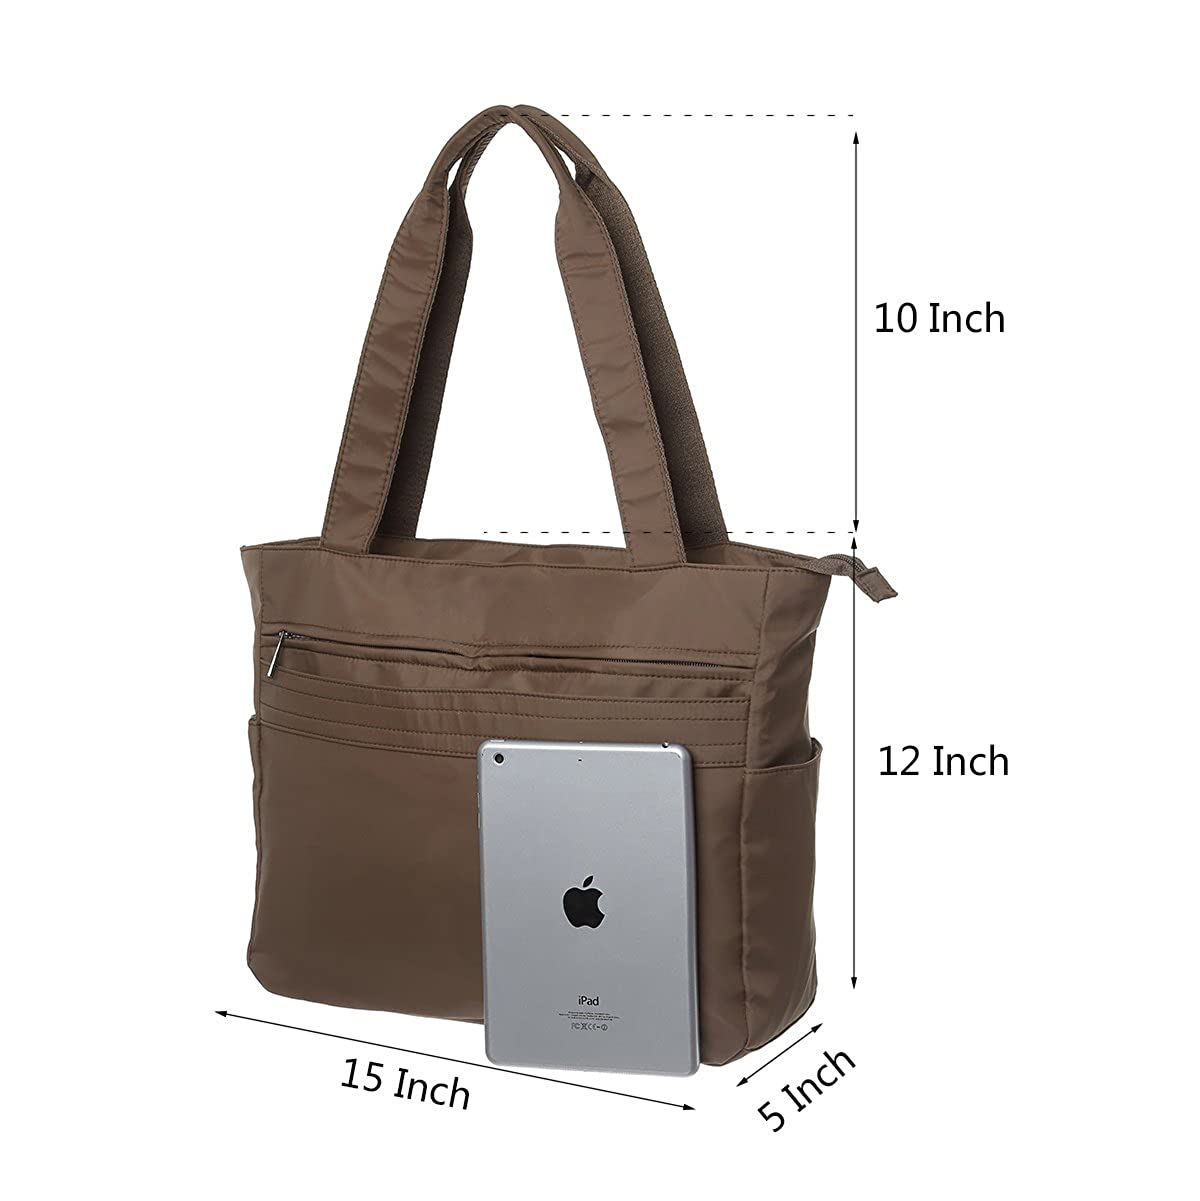 bbd0b19ca3 Amazon.com  Nylon Large Tote Bags Waterproof Lightweight Handbags Travel Shoulder  Bag for Women with Umbrella Pocket  Shoes